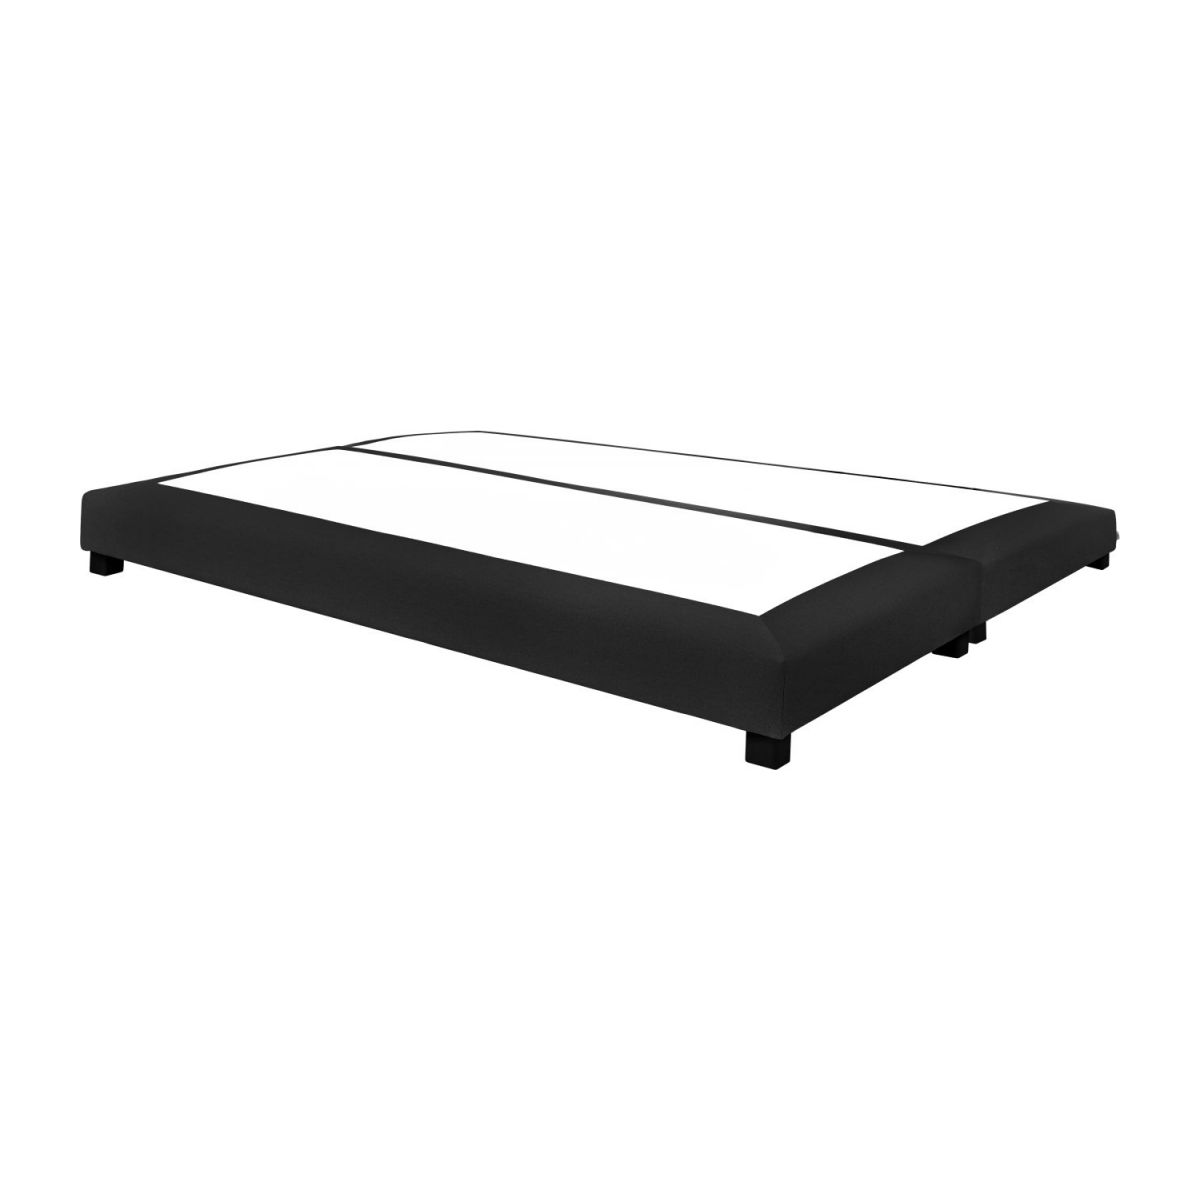 Slatted bed base 2 x 90 x 200 cm n°1